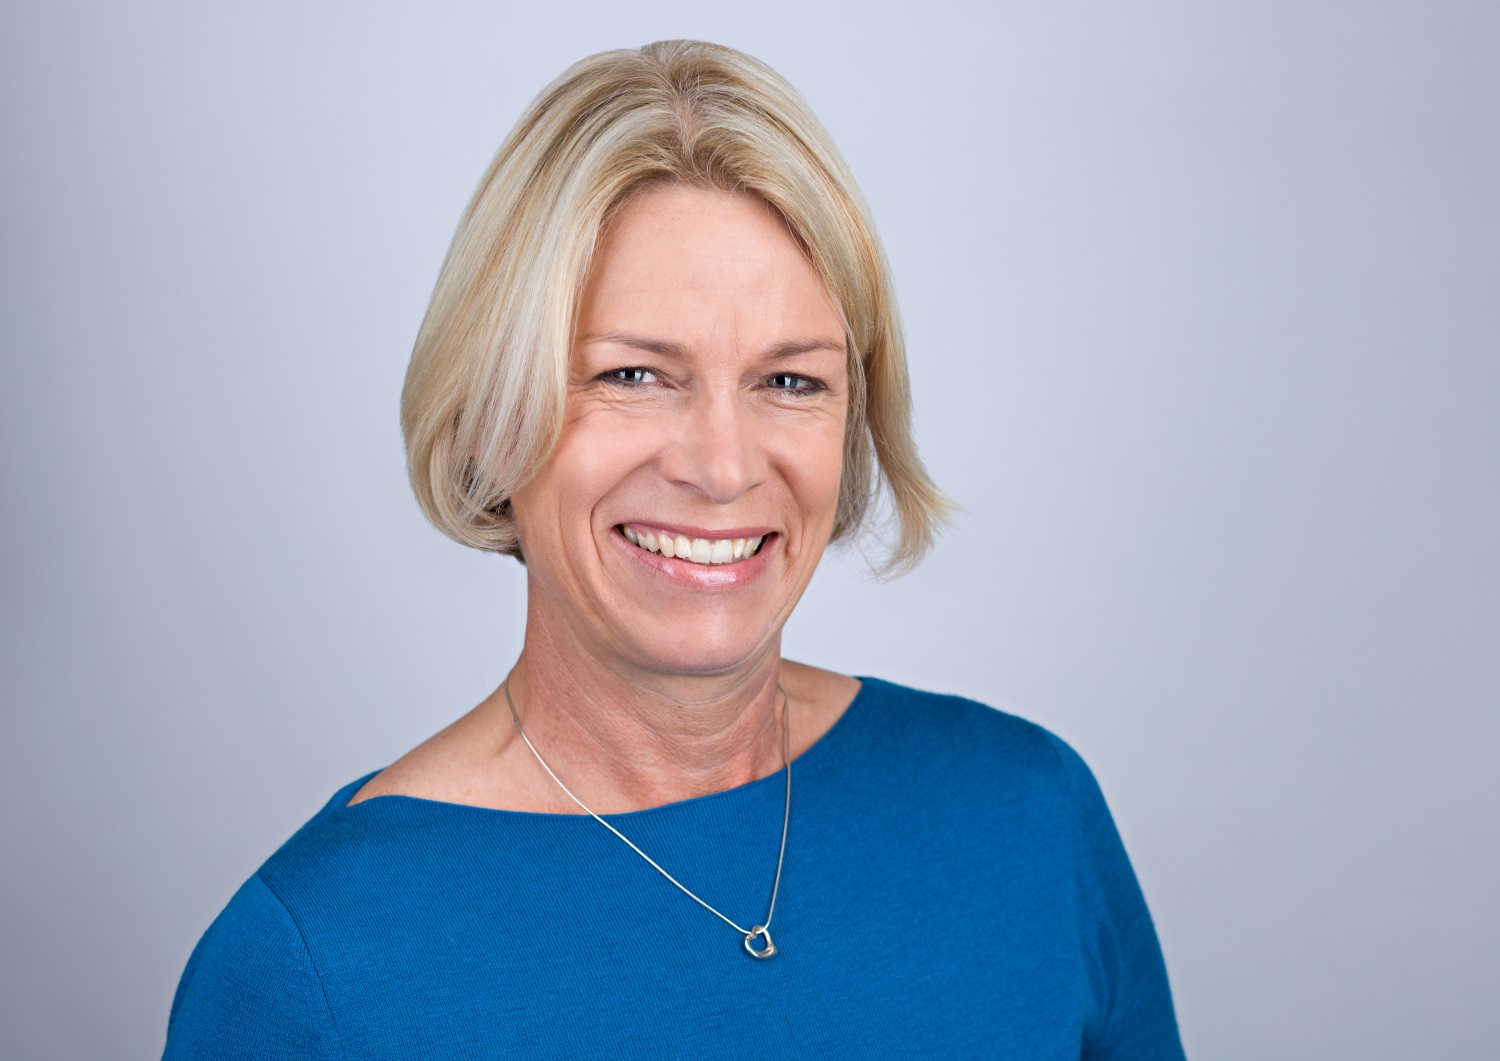 Suzanne's Top Tips for Marketing Strategies for Cleaning Companies